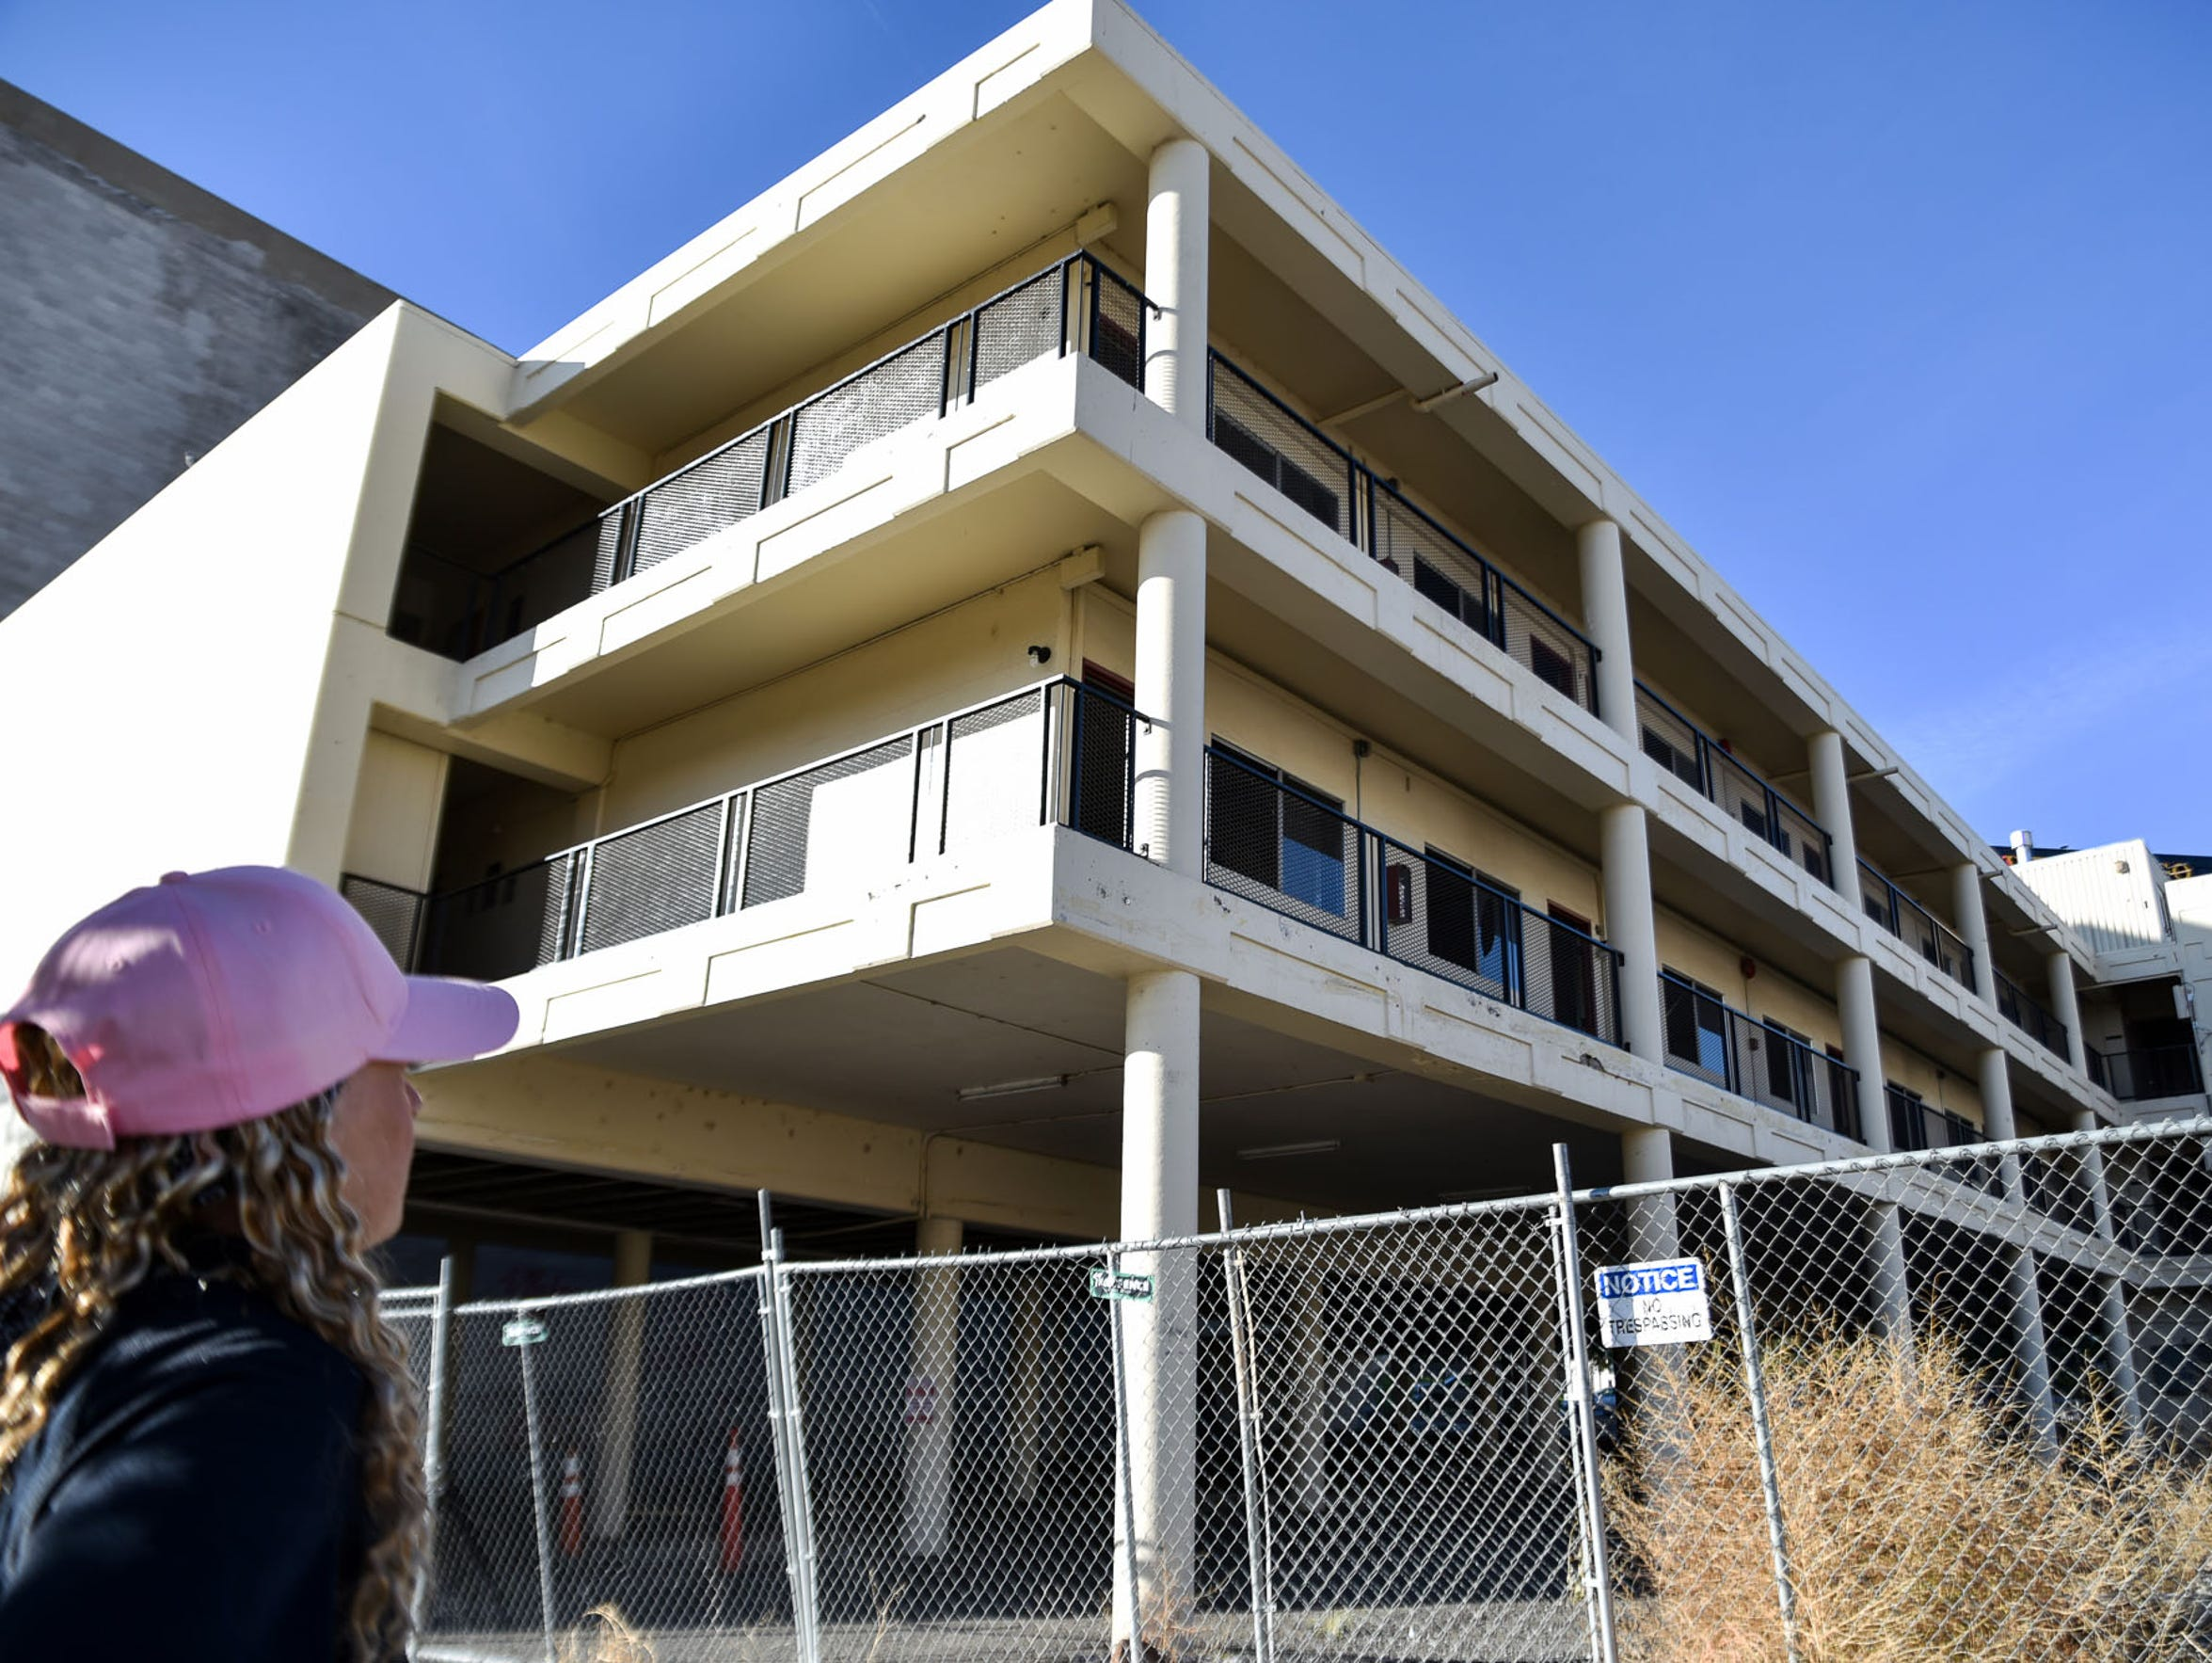 only on rgj can reno revive downtown this year